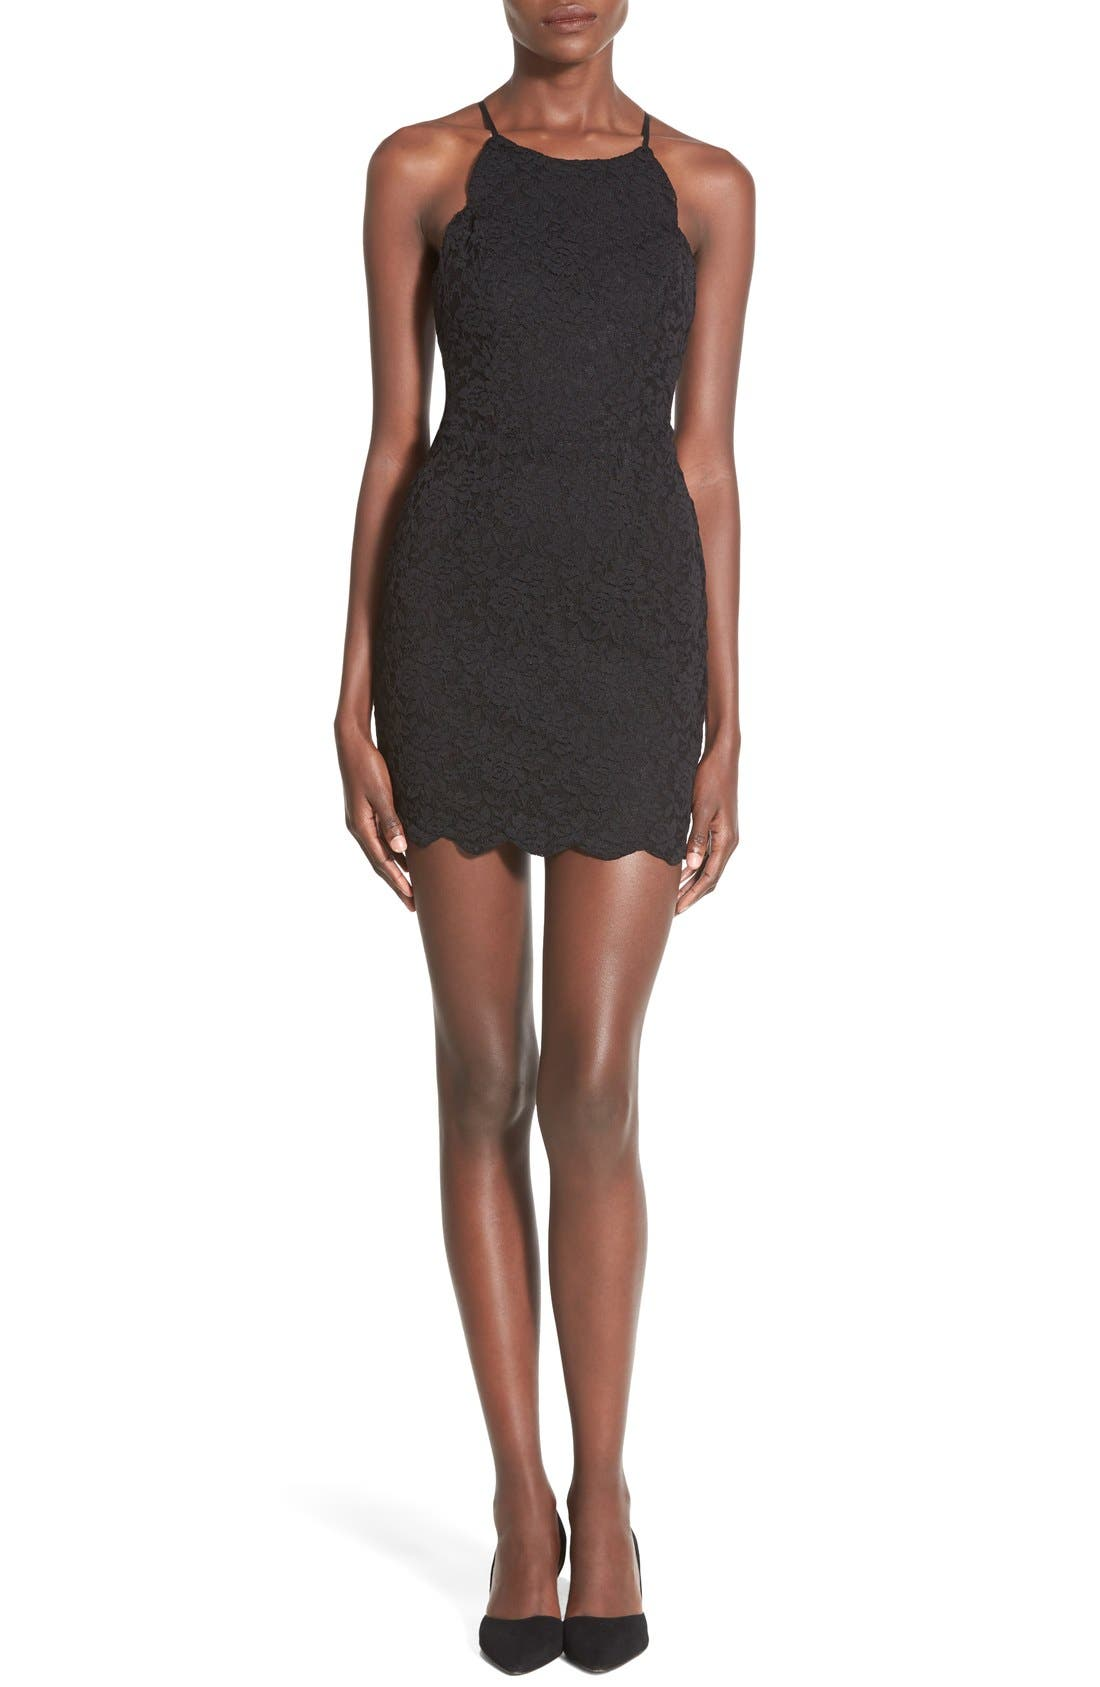 Alternate Image 1 Selected - Hommage Strappy Lace Body-Con Dress